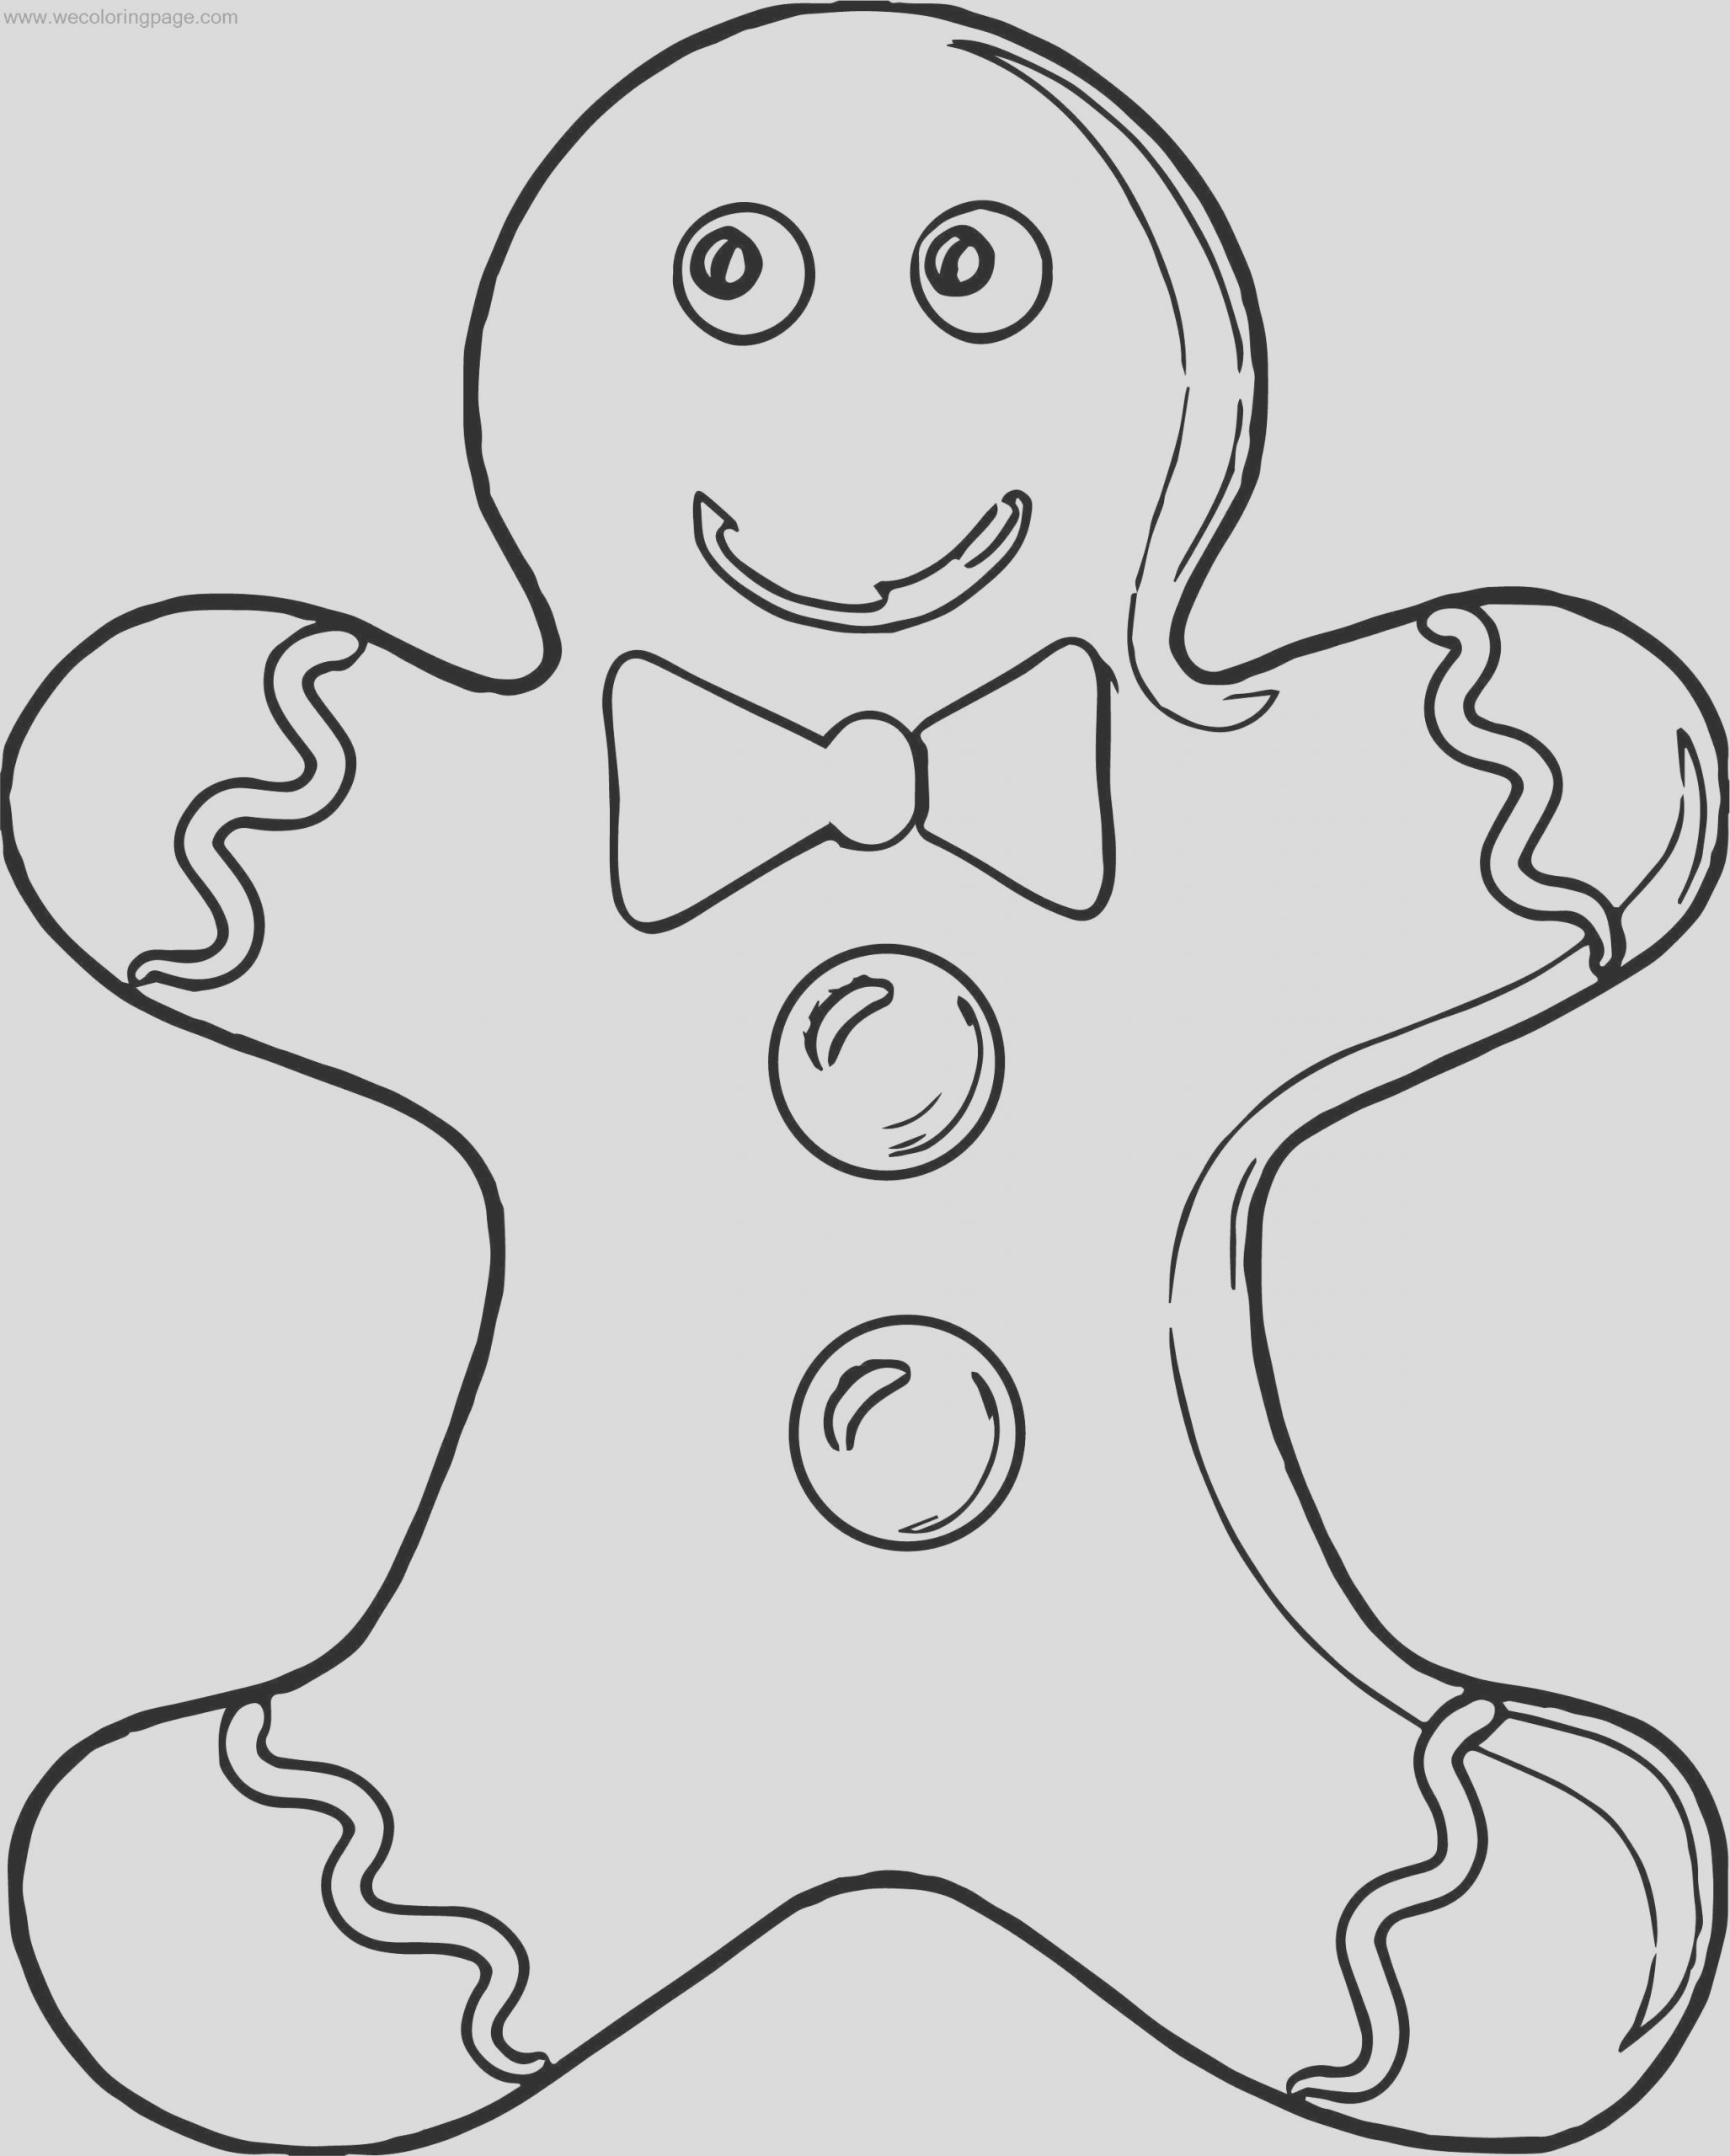 exchange gingerbread man cookie gingerbread house coloring page